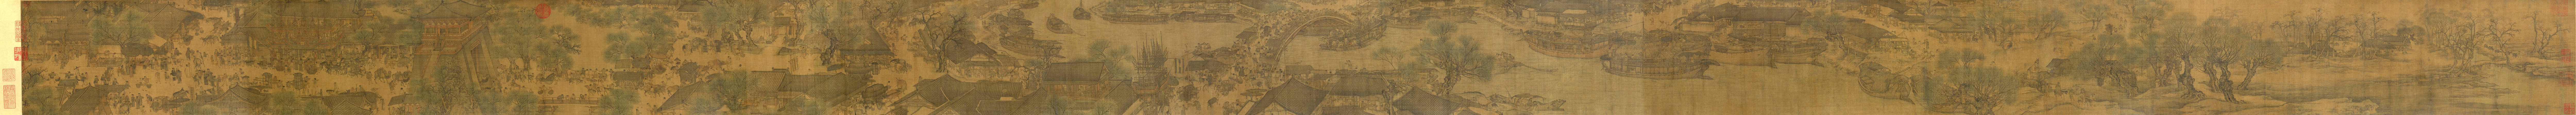 Zhang Zeduan: Along the River During the Qingming Festival